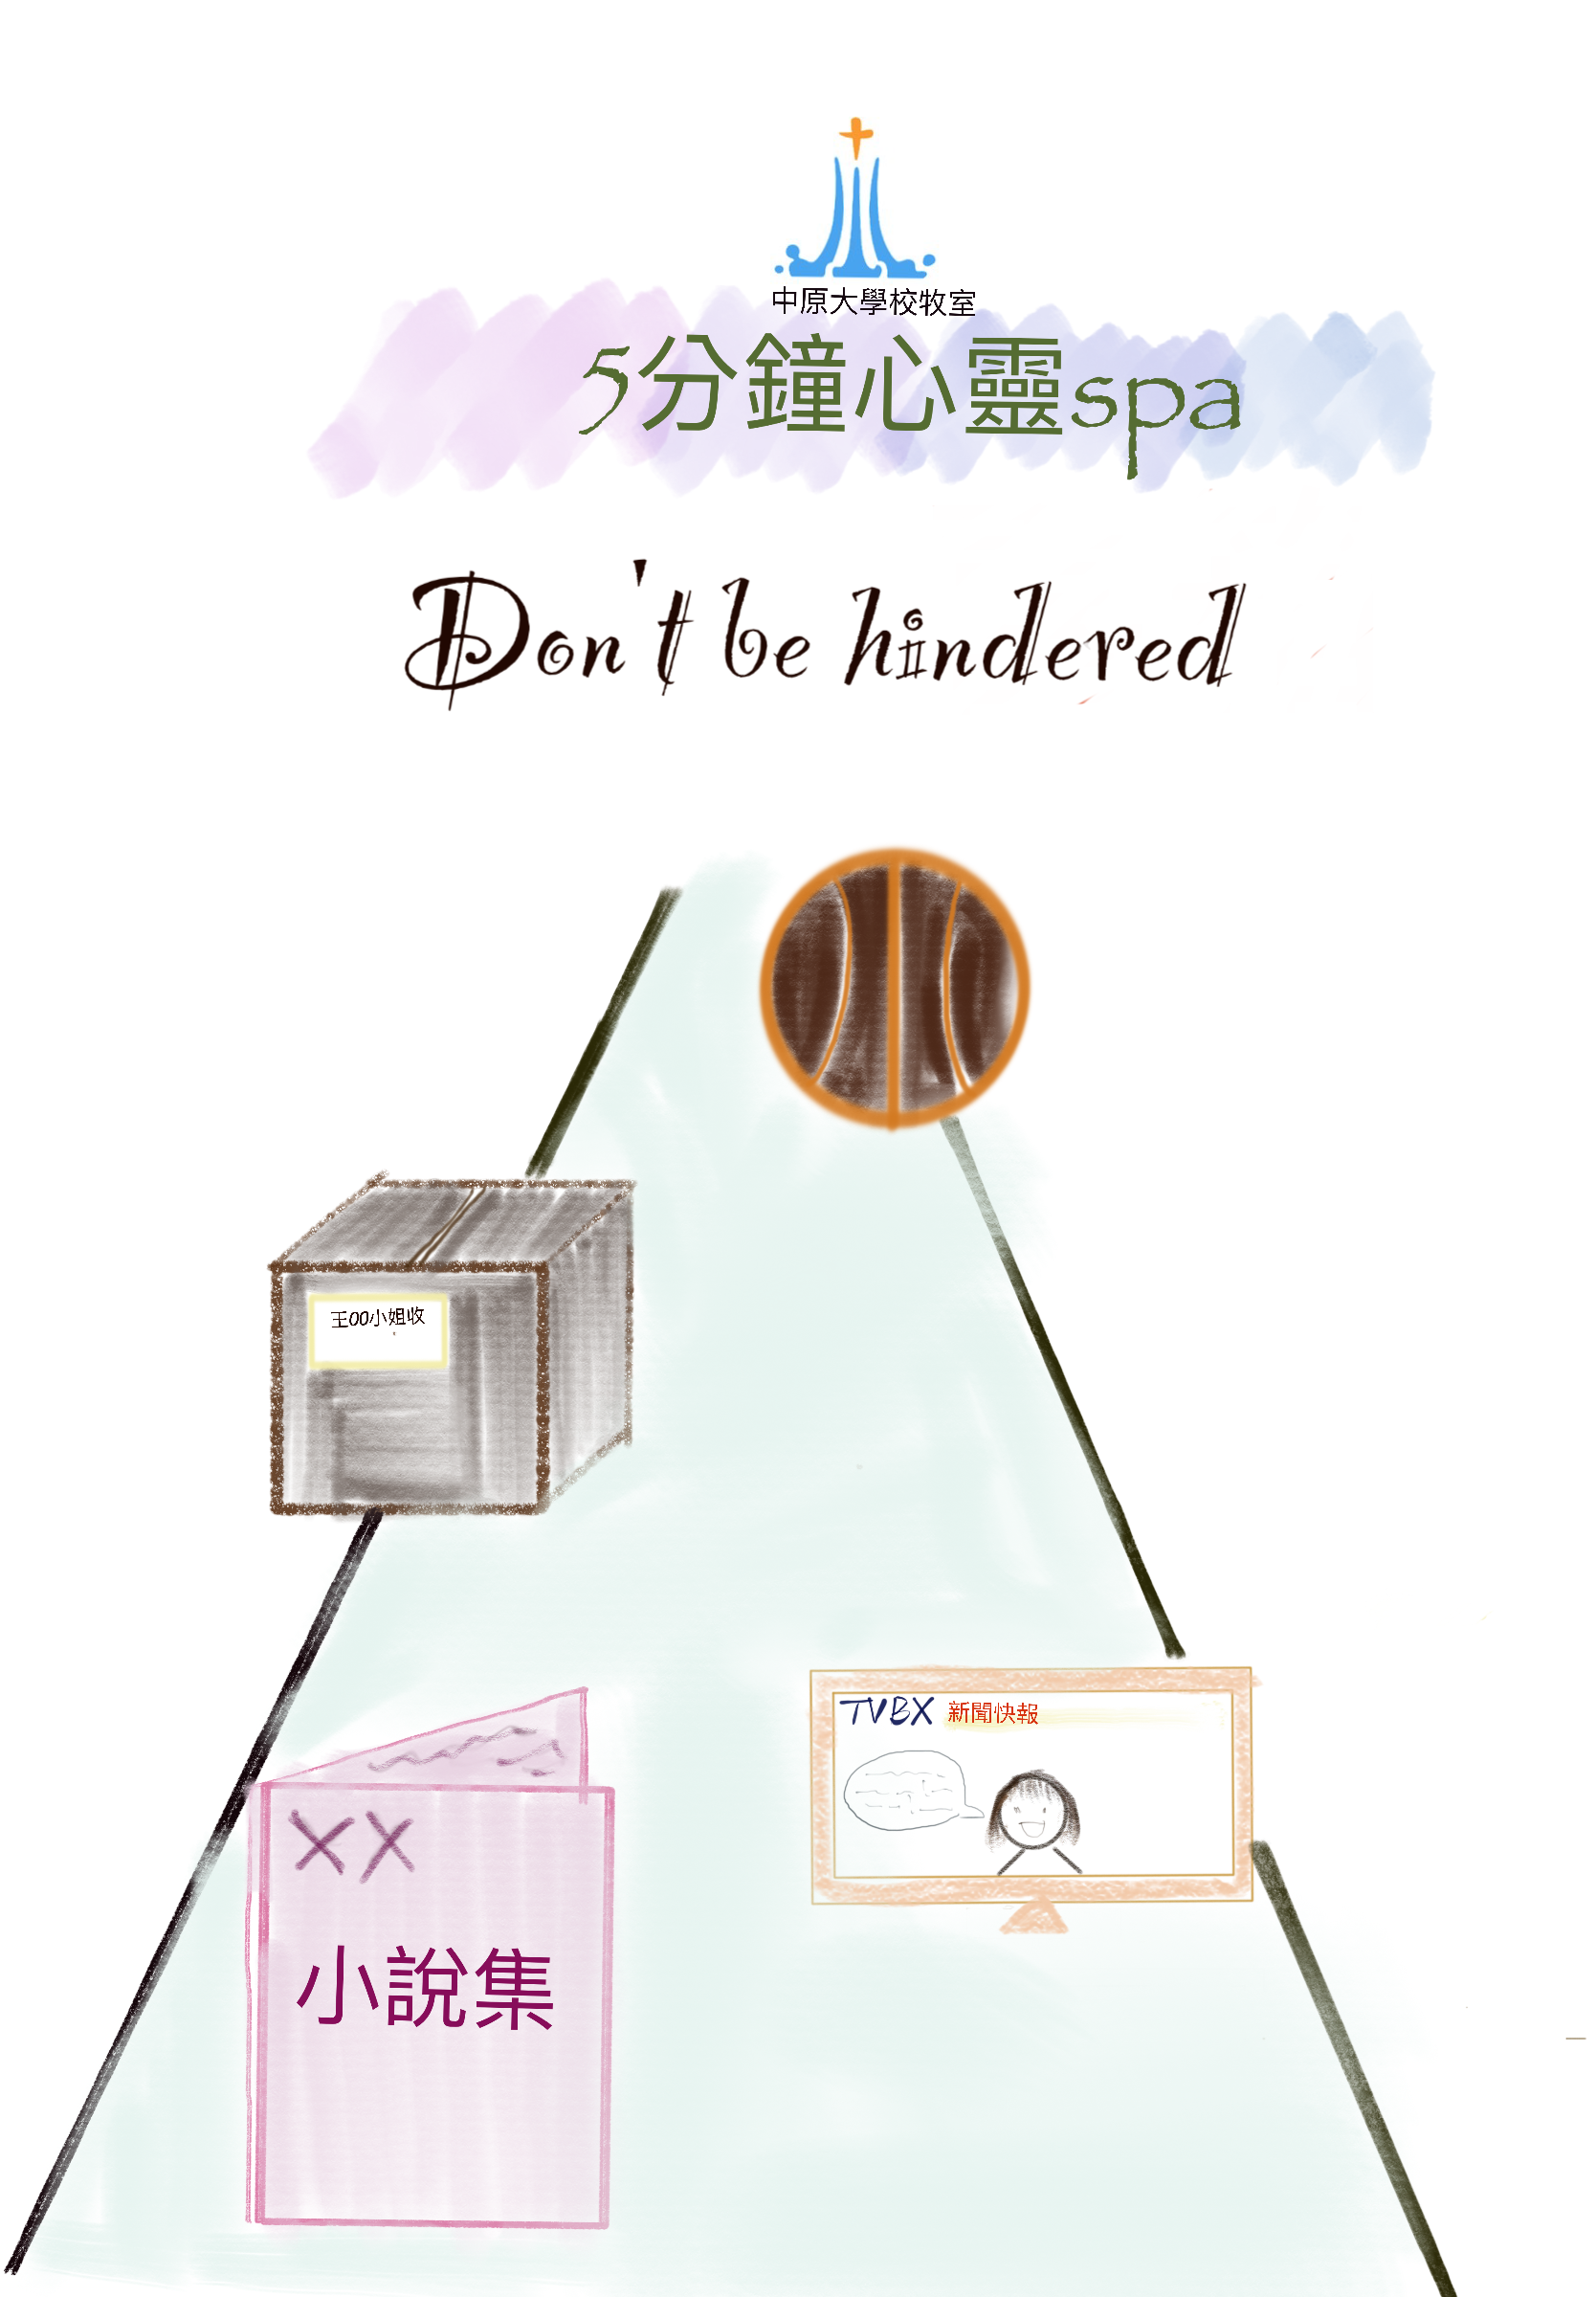 2021/10/04『Don't be Hindered 』